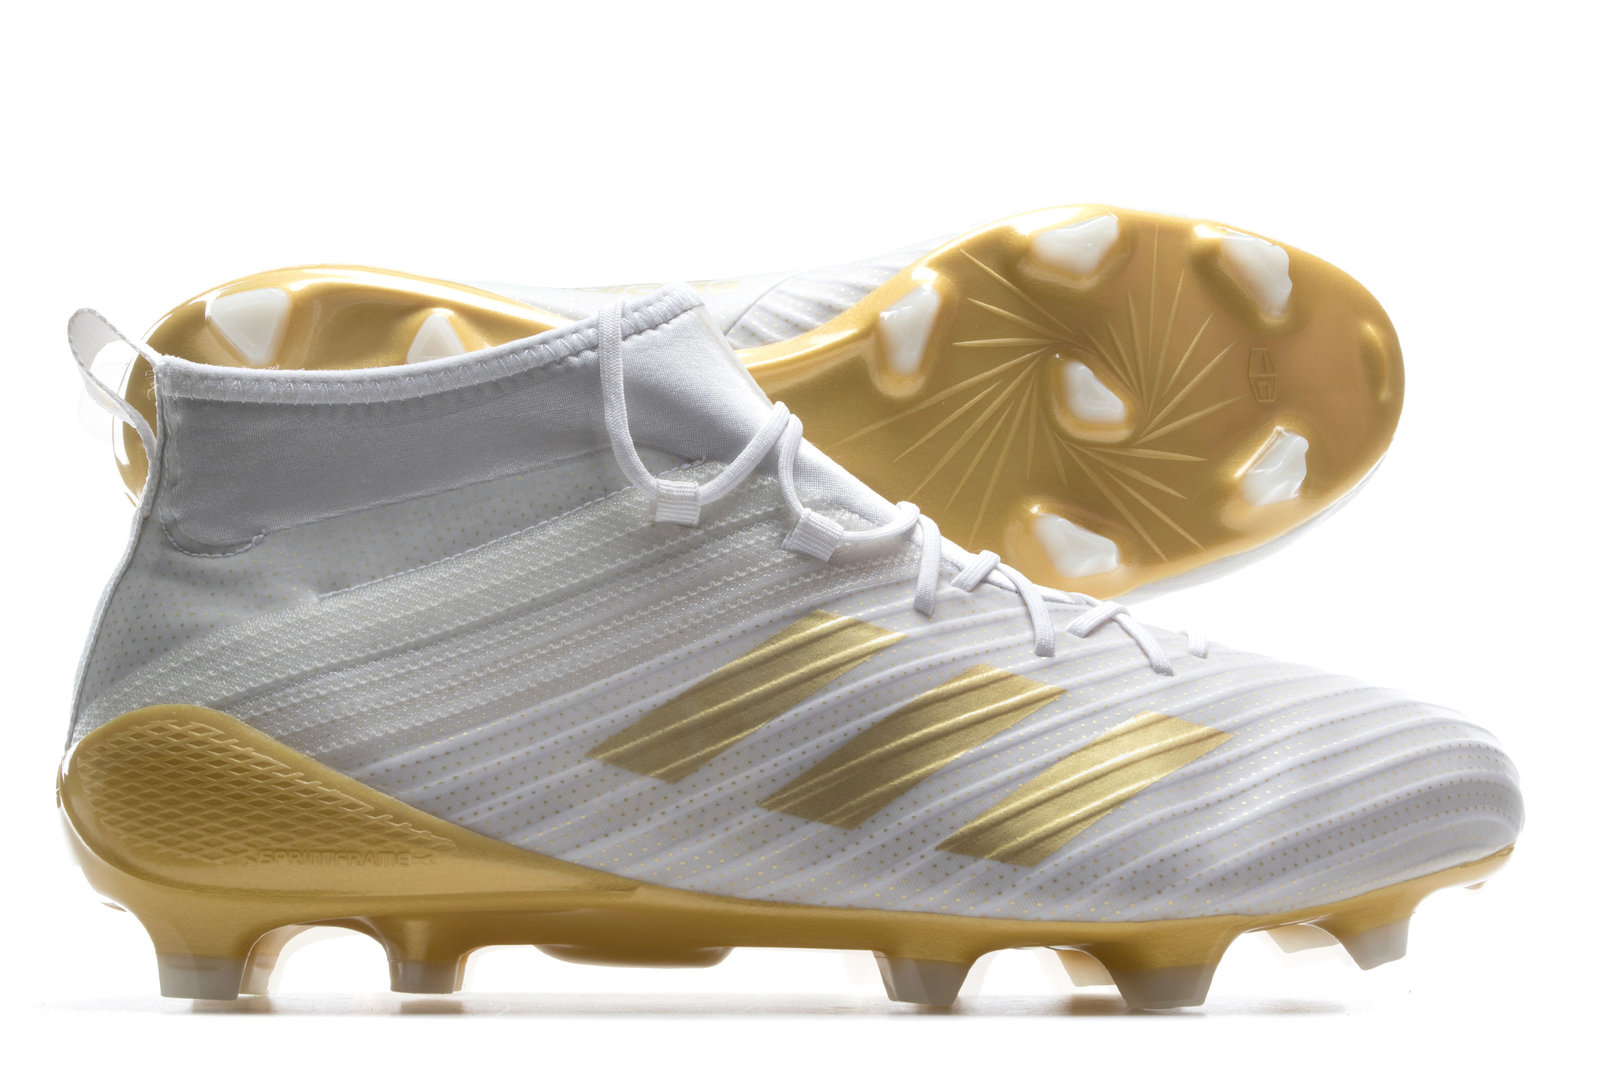 538124e66094 adidas Mens Predator Flare FG Rugby Boots Shoes Footwear Sports Training